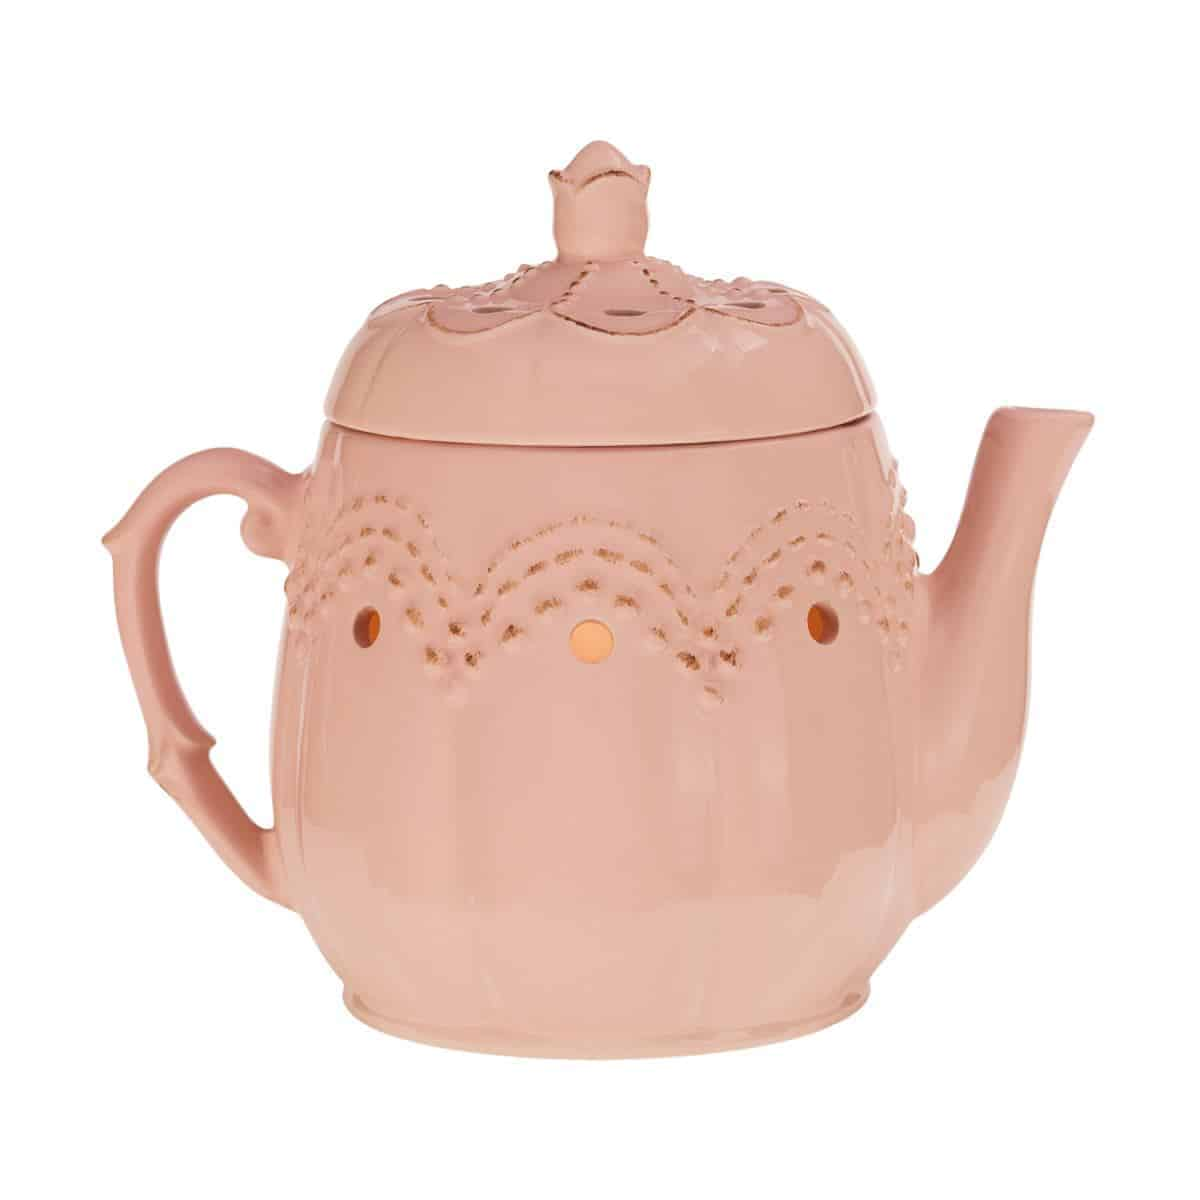 Scentsy Teapot Warmer Candle Warmers Girls Room